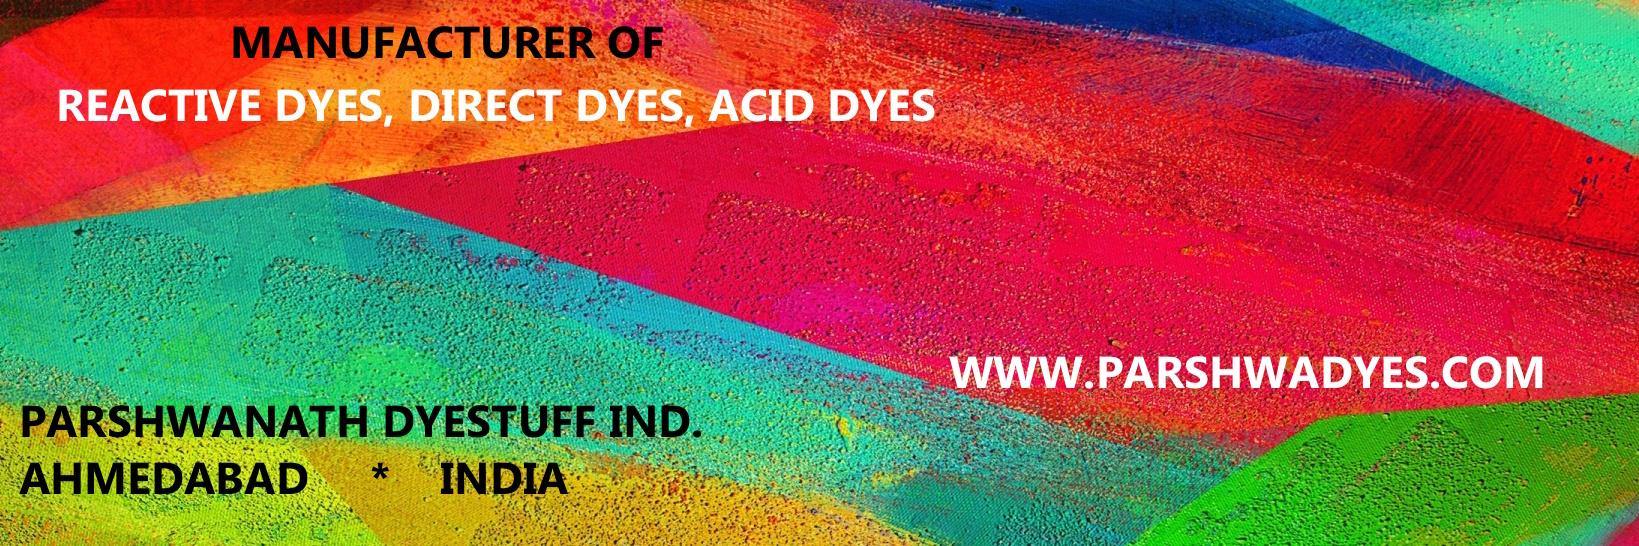 REACTIVE DYES , PRINTING DYES, DYES FOR HOSIERY, KNITTED DYE FROM DHAKA, BANGLADESH - by Parshwanath Dyestuff Industries, Ahmedabad